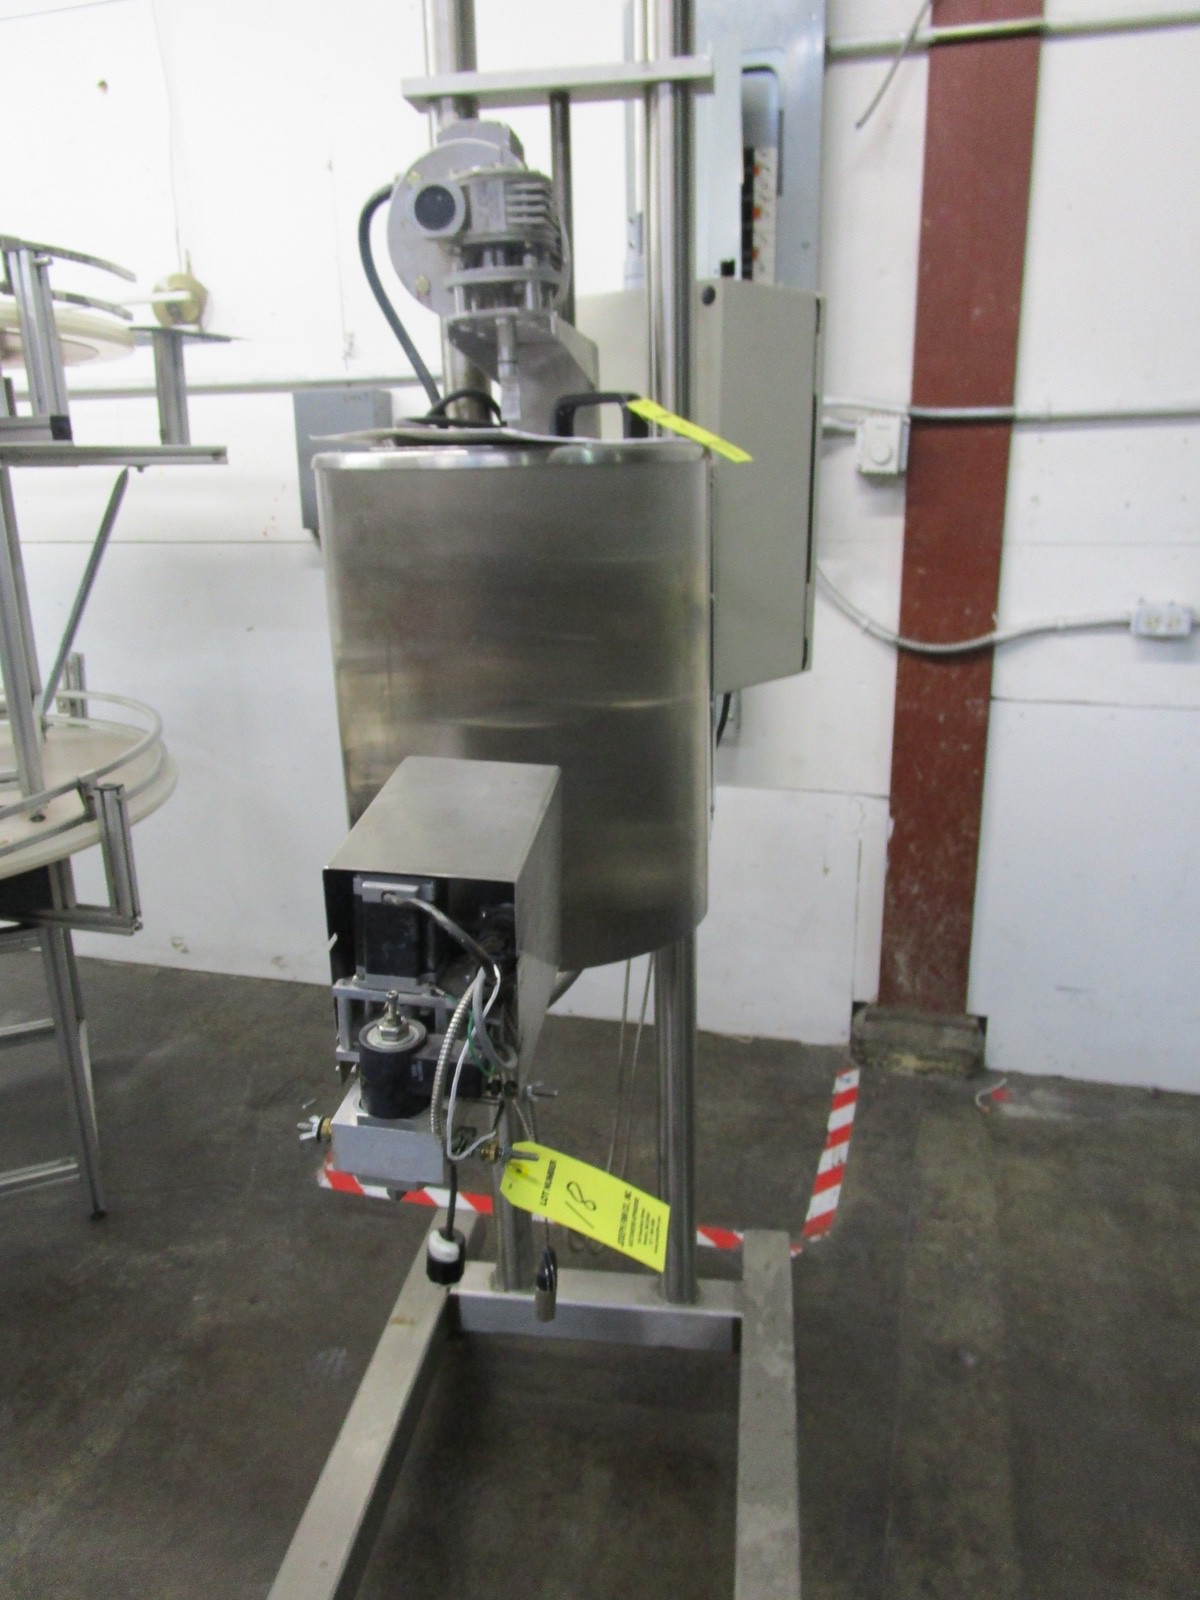 Cavalla Soy Wax Melter For Solid Perfume, K15 Control, s/n 116, Roller Conveyor | Rig Fee: $50 - Image 2 of 7